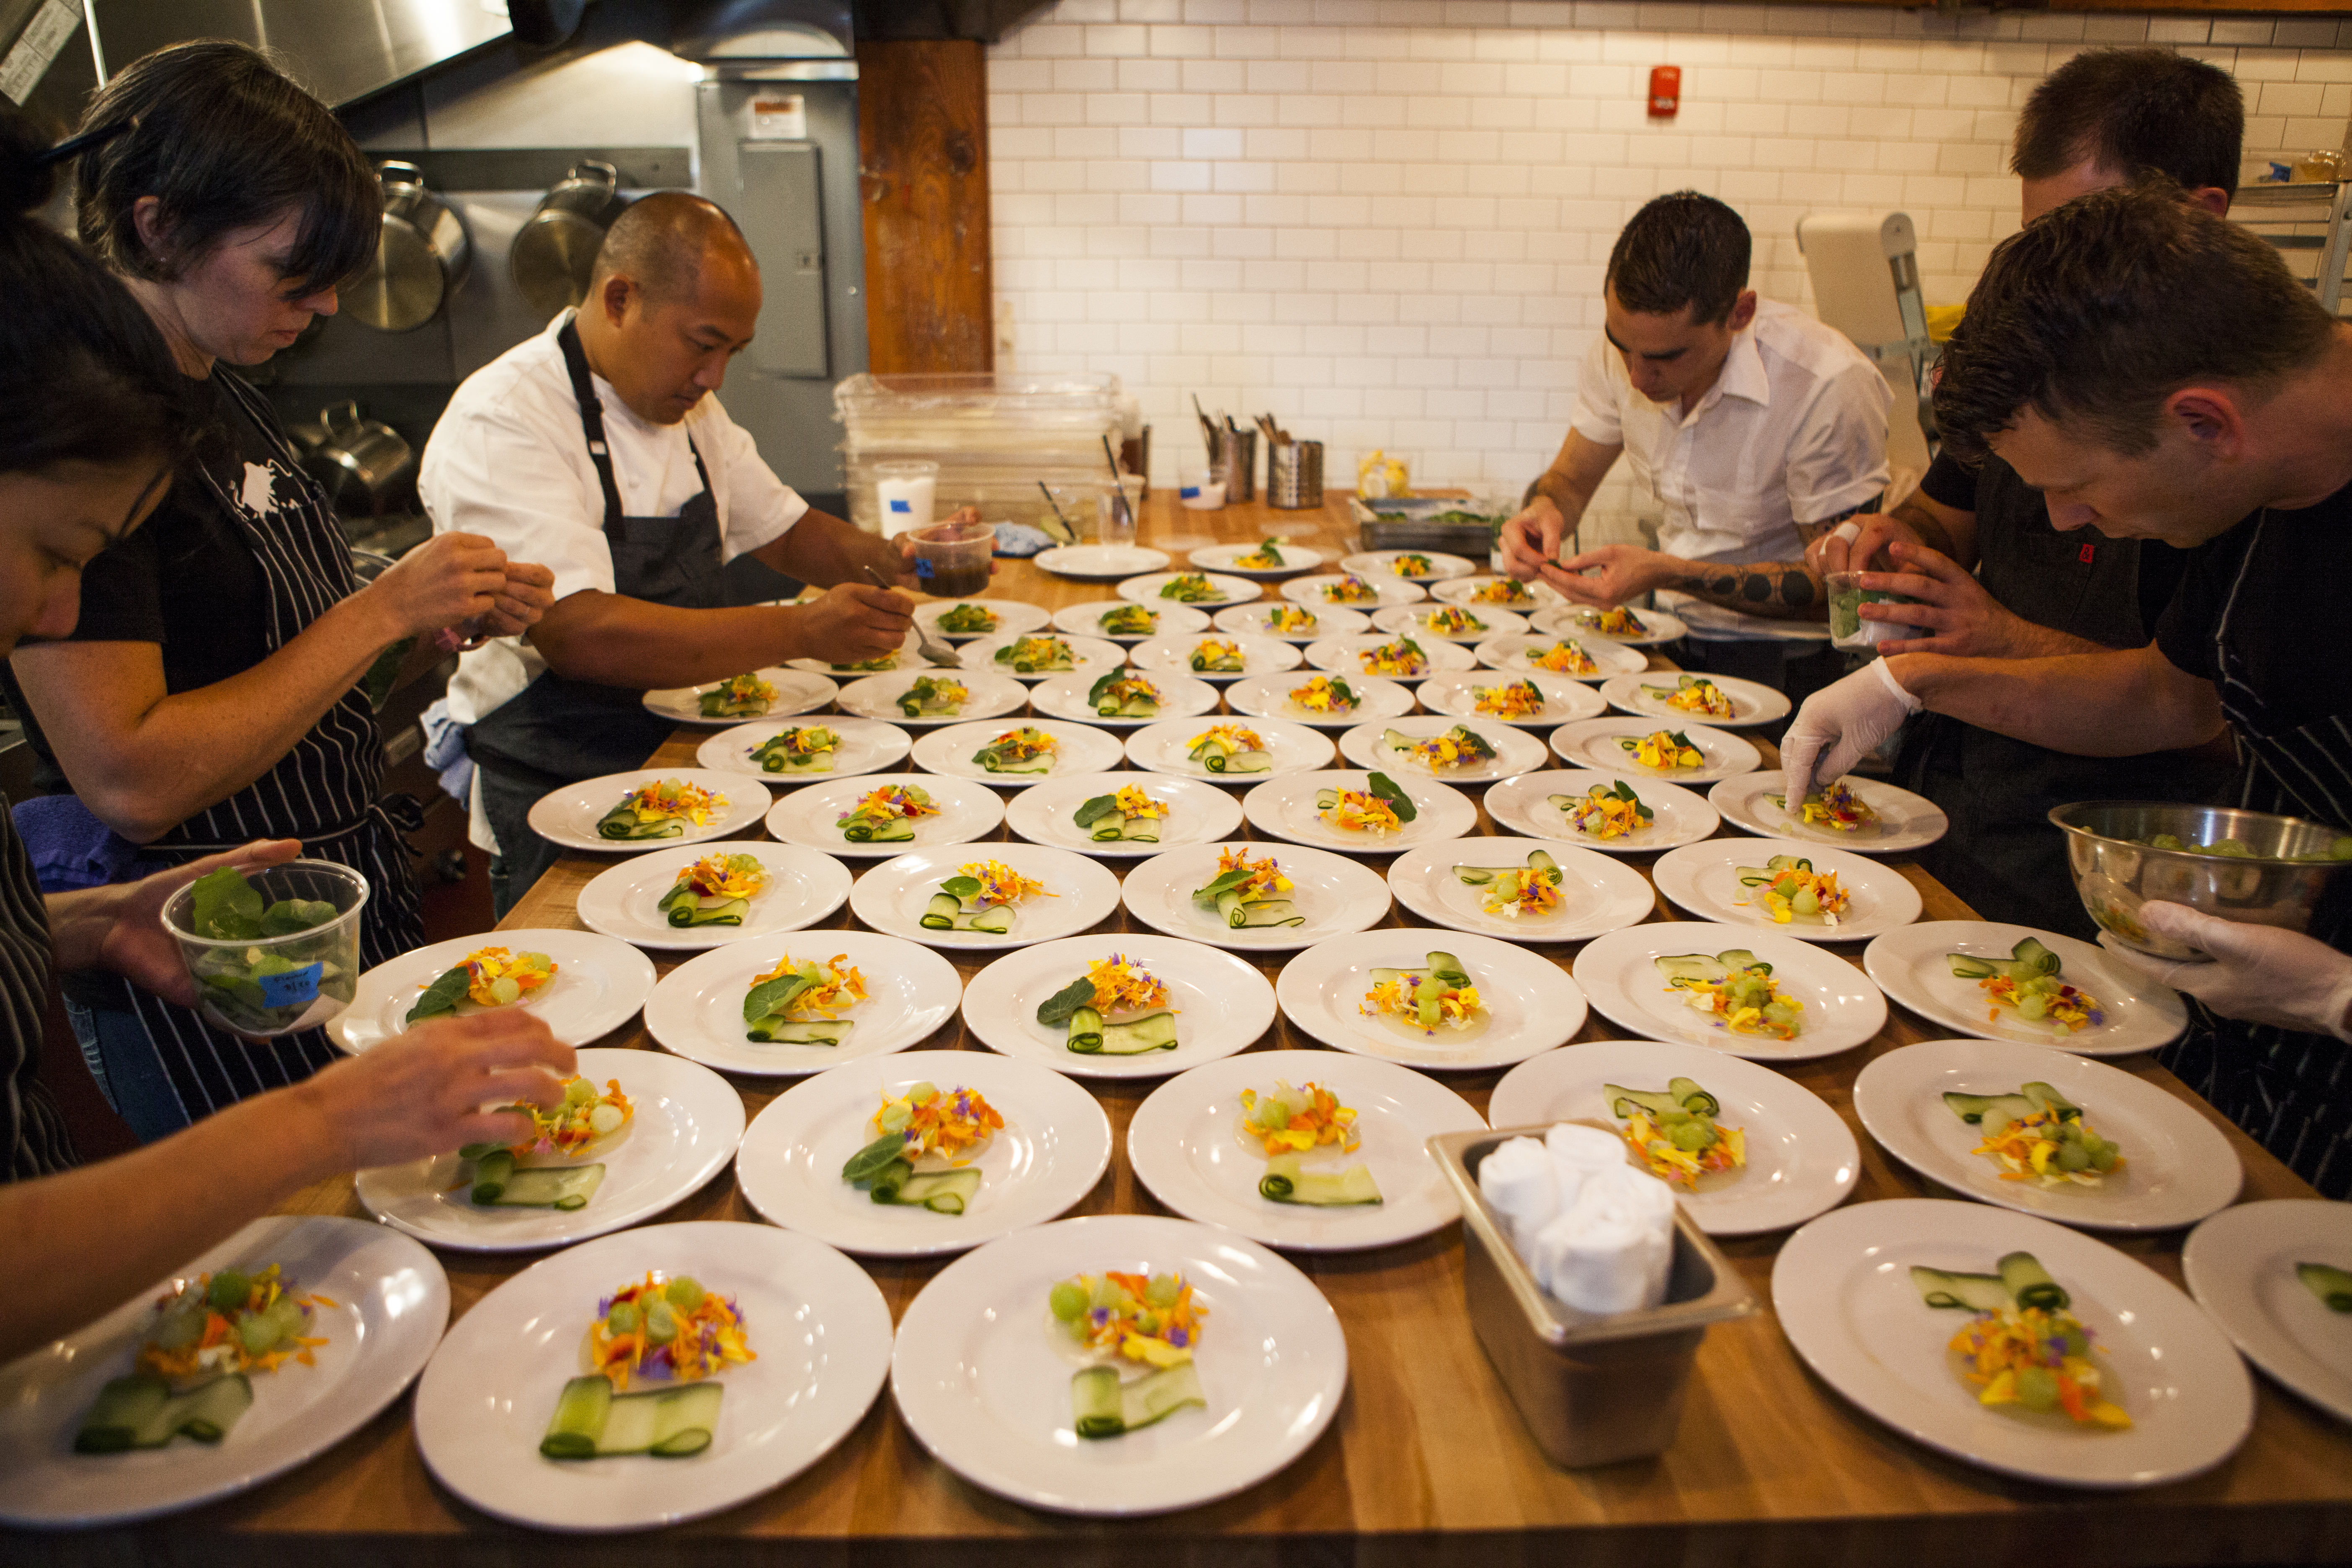 Chefs Anthony Cafiero and Carlo Lamagna competing at Versus